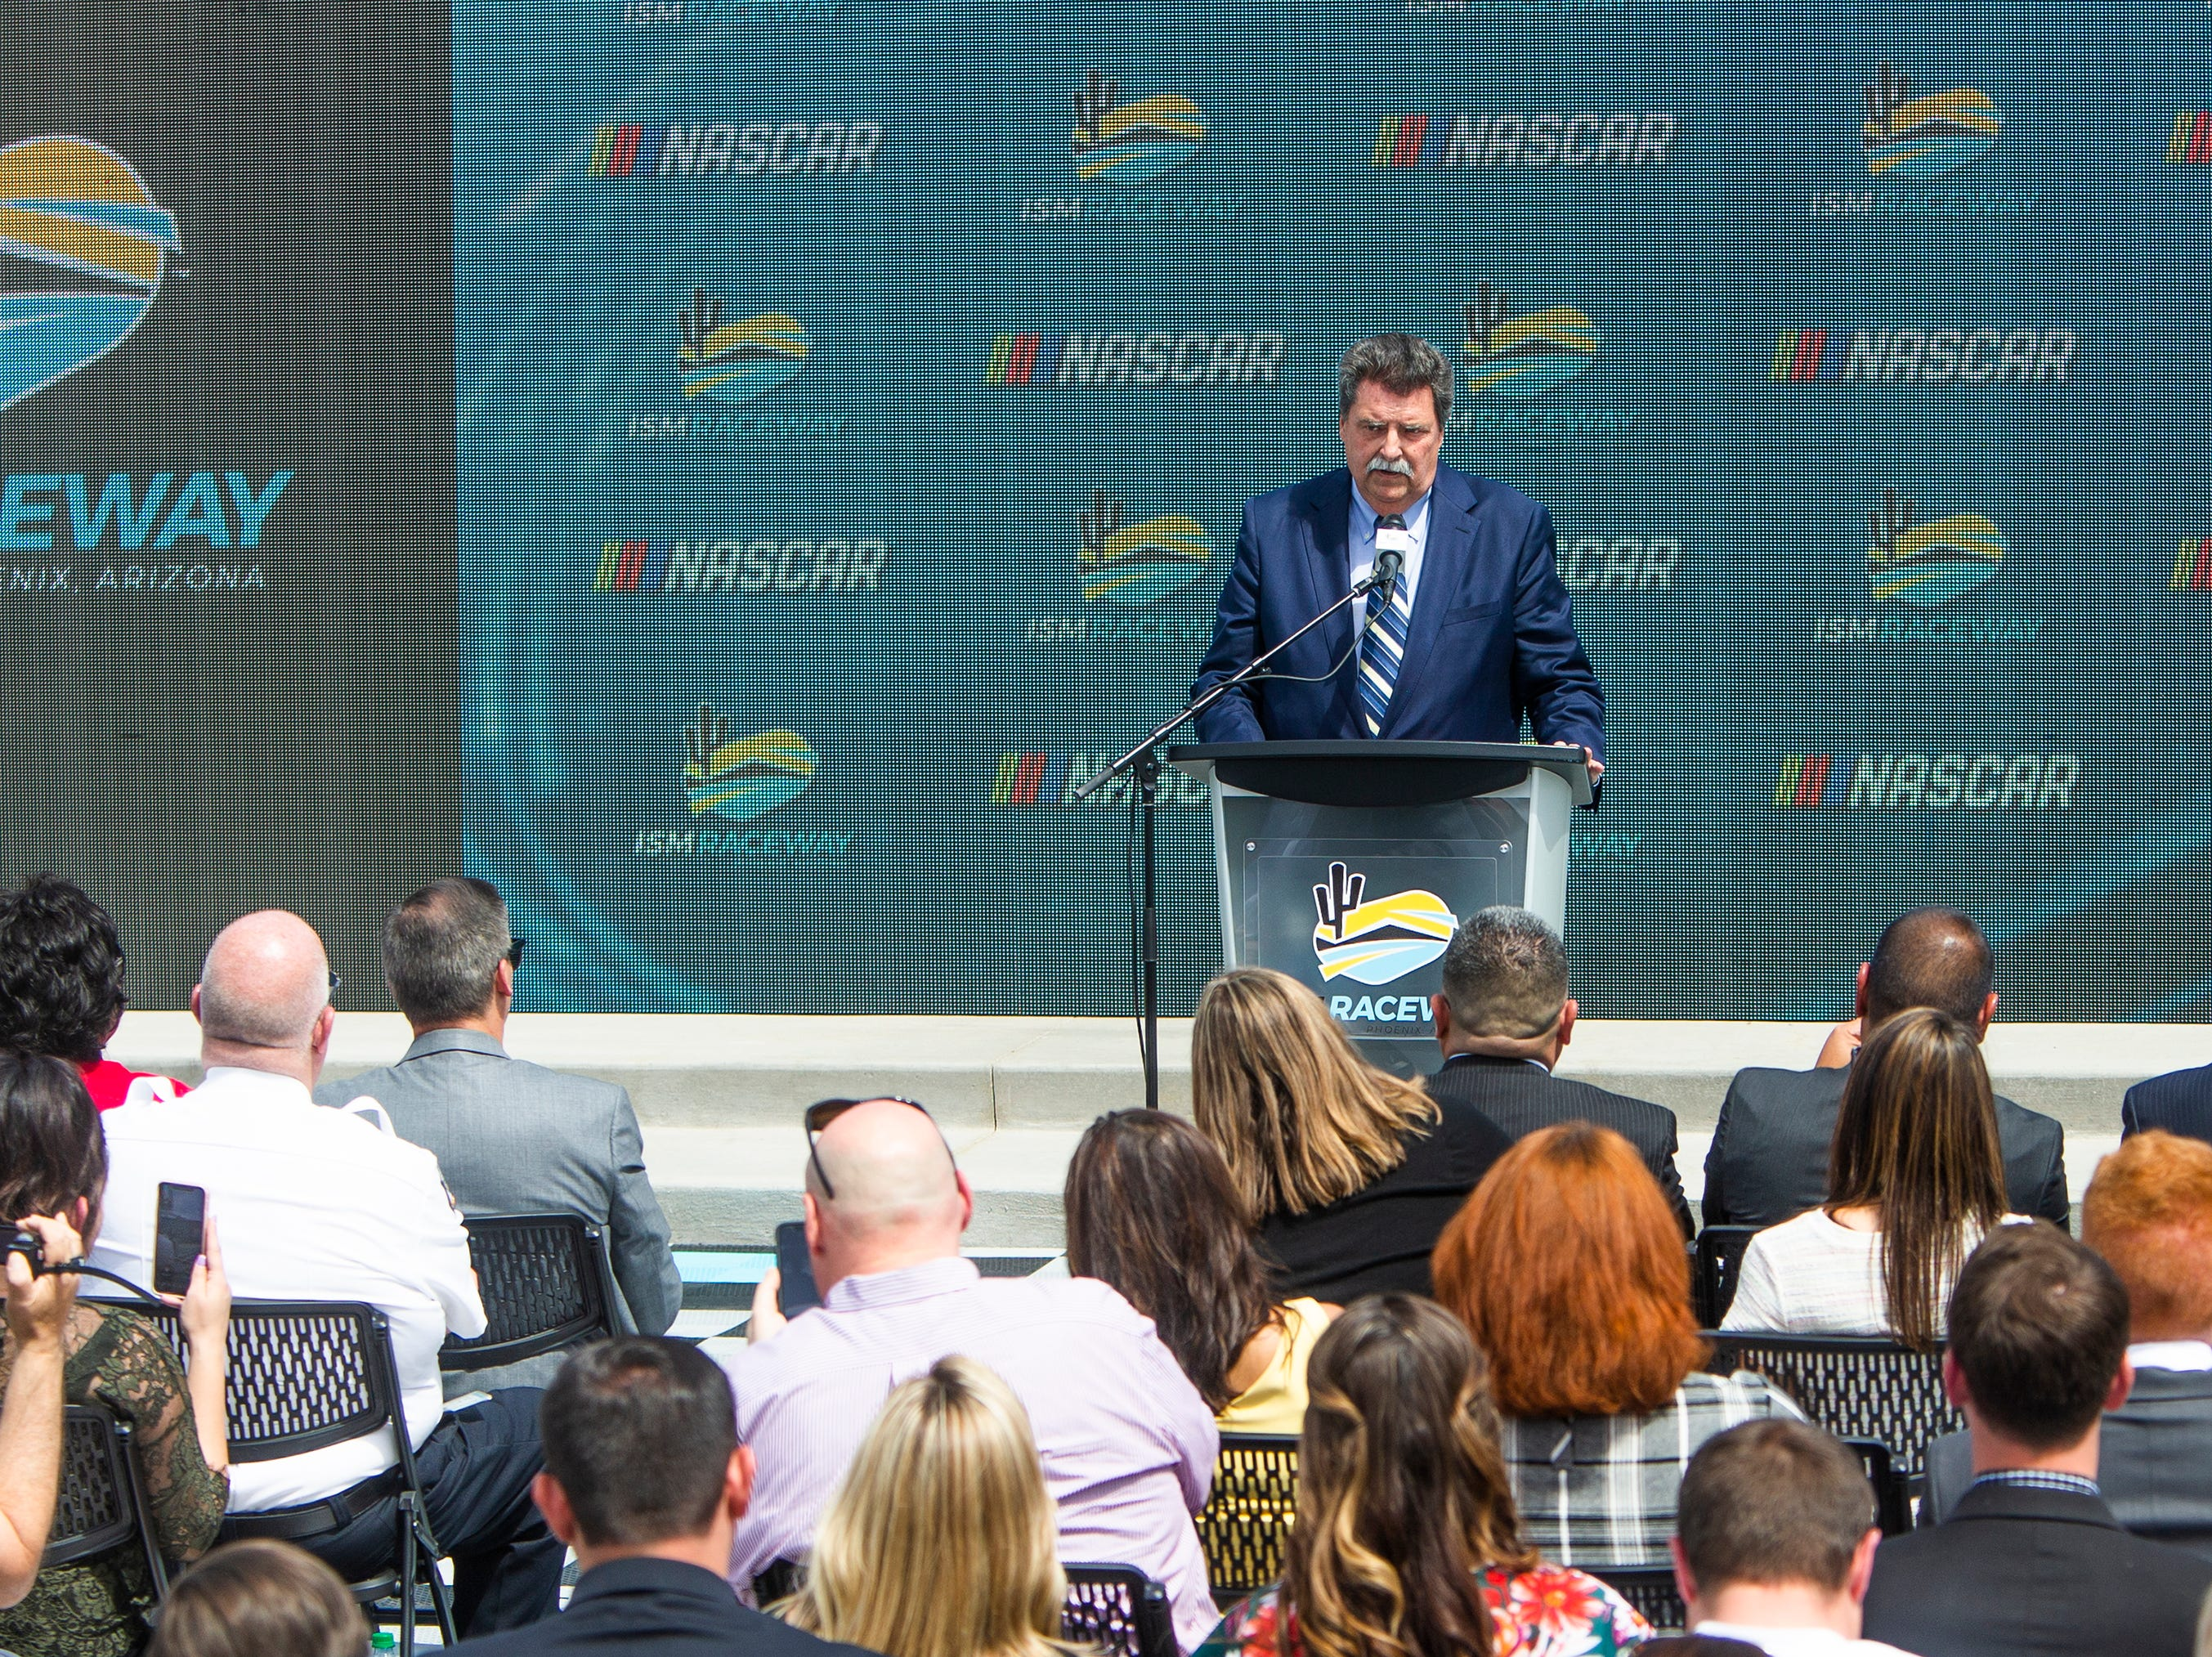 NASCAR Vice Chairman Mike Helton speaks March 26, 2019, about the announcement that the NASCAR Championship Weekend will be coming to ISM Raceway in Avondale, November 6-8, 2020.